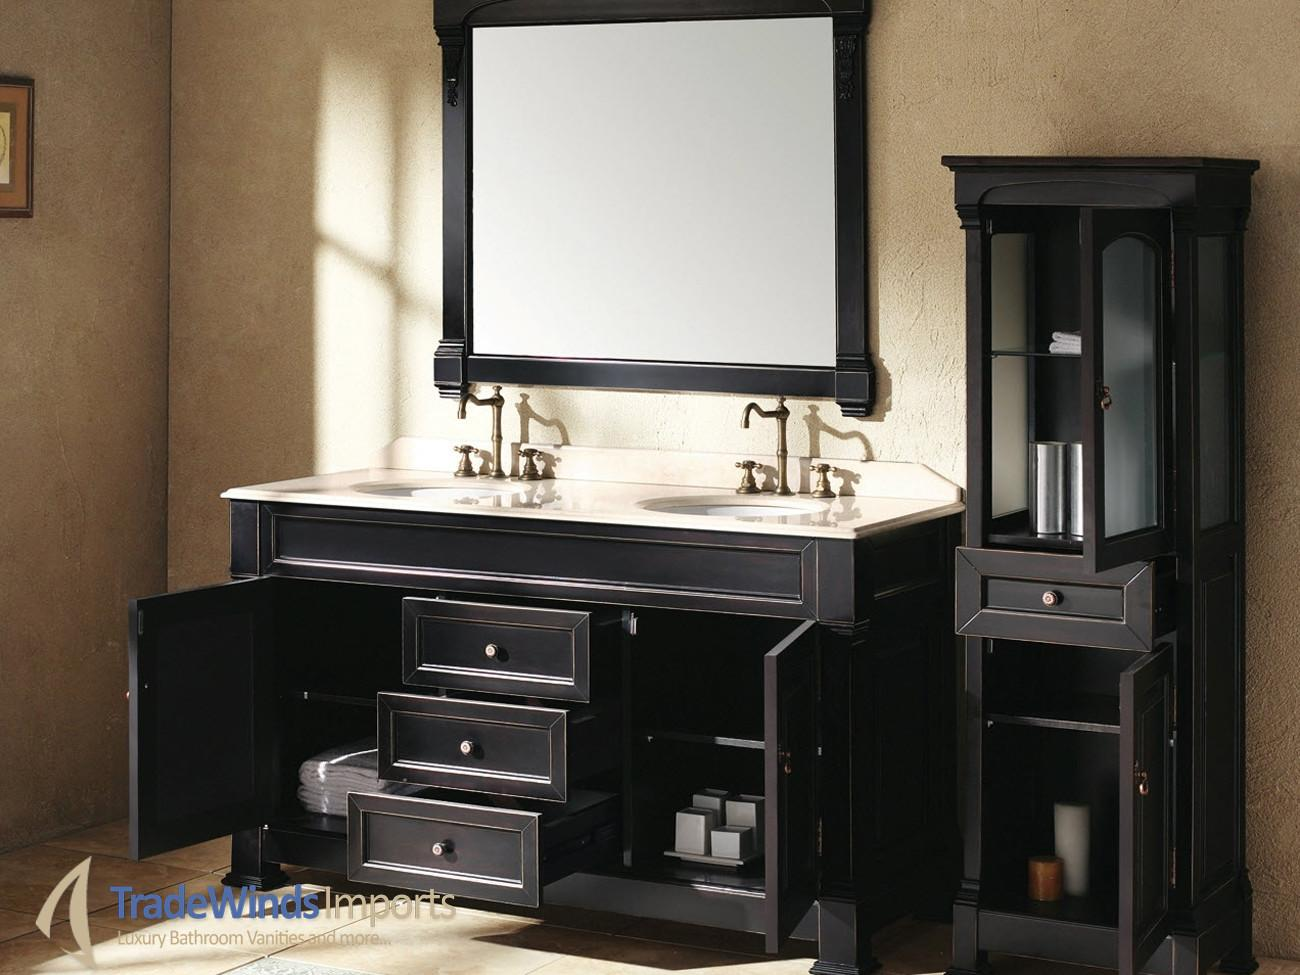 Shocking Facts Black Bathroom Cabinets Chinese